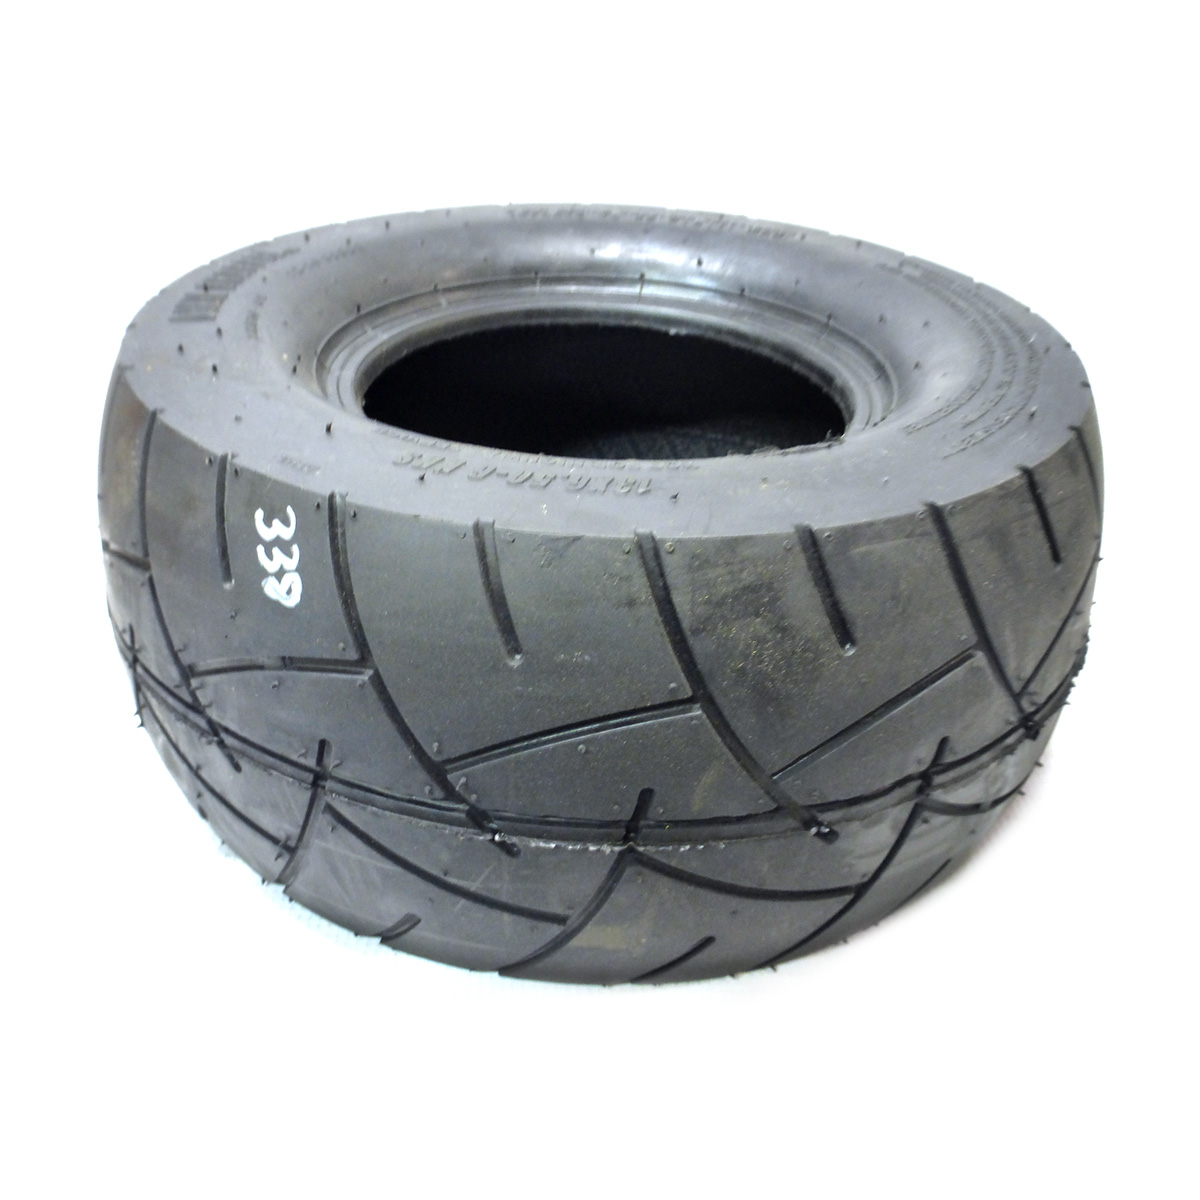 DUP-400338 Dixie Chopper MC Tread Tire 13x6.5x6